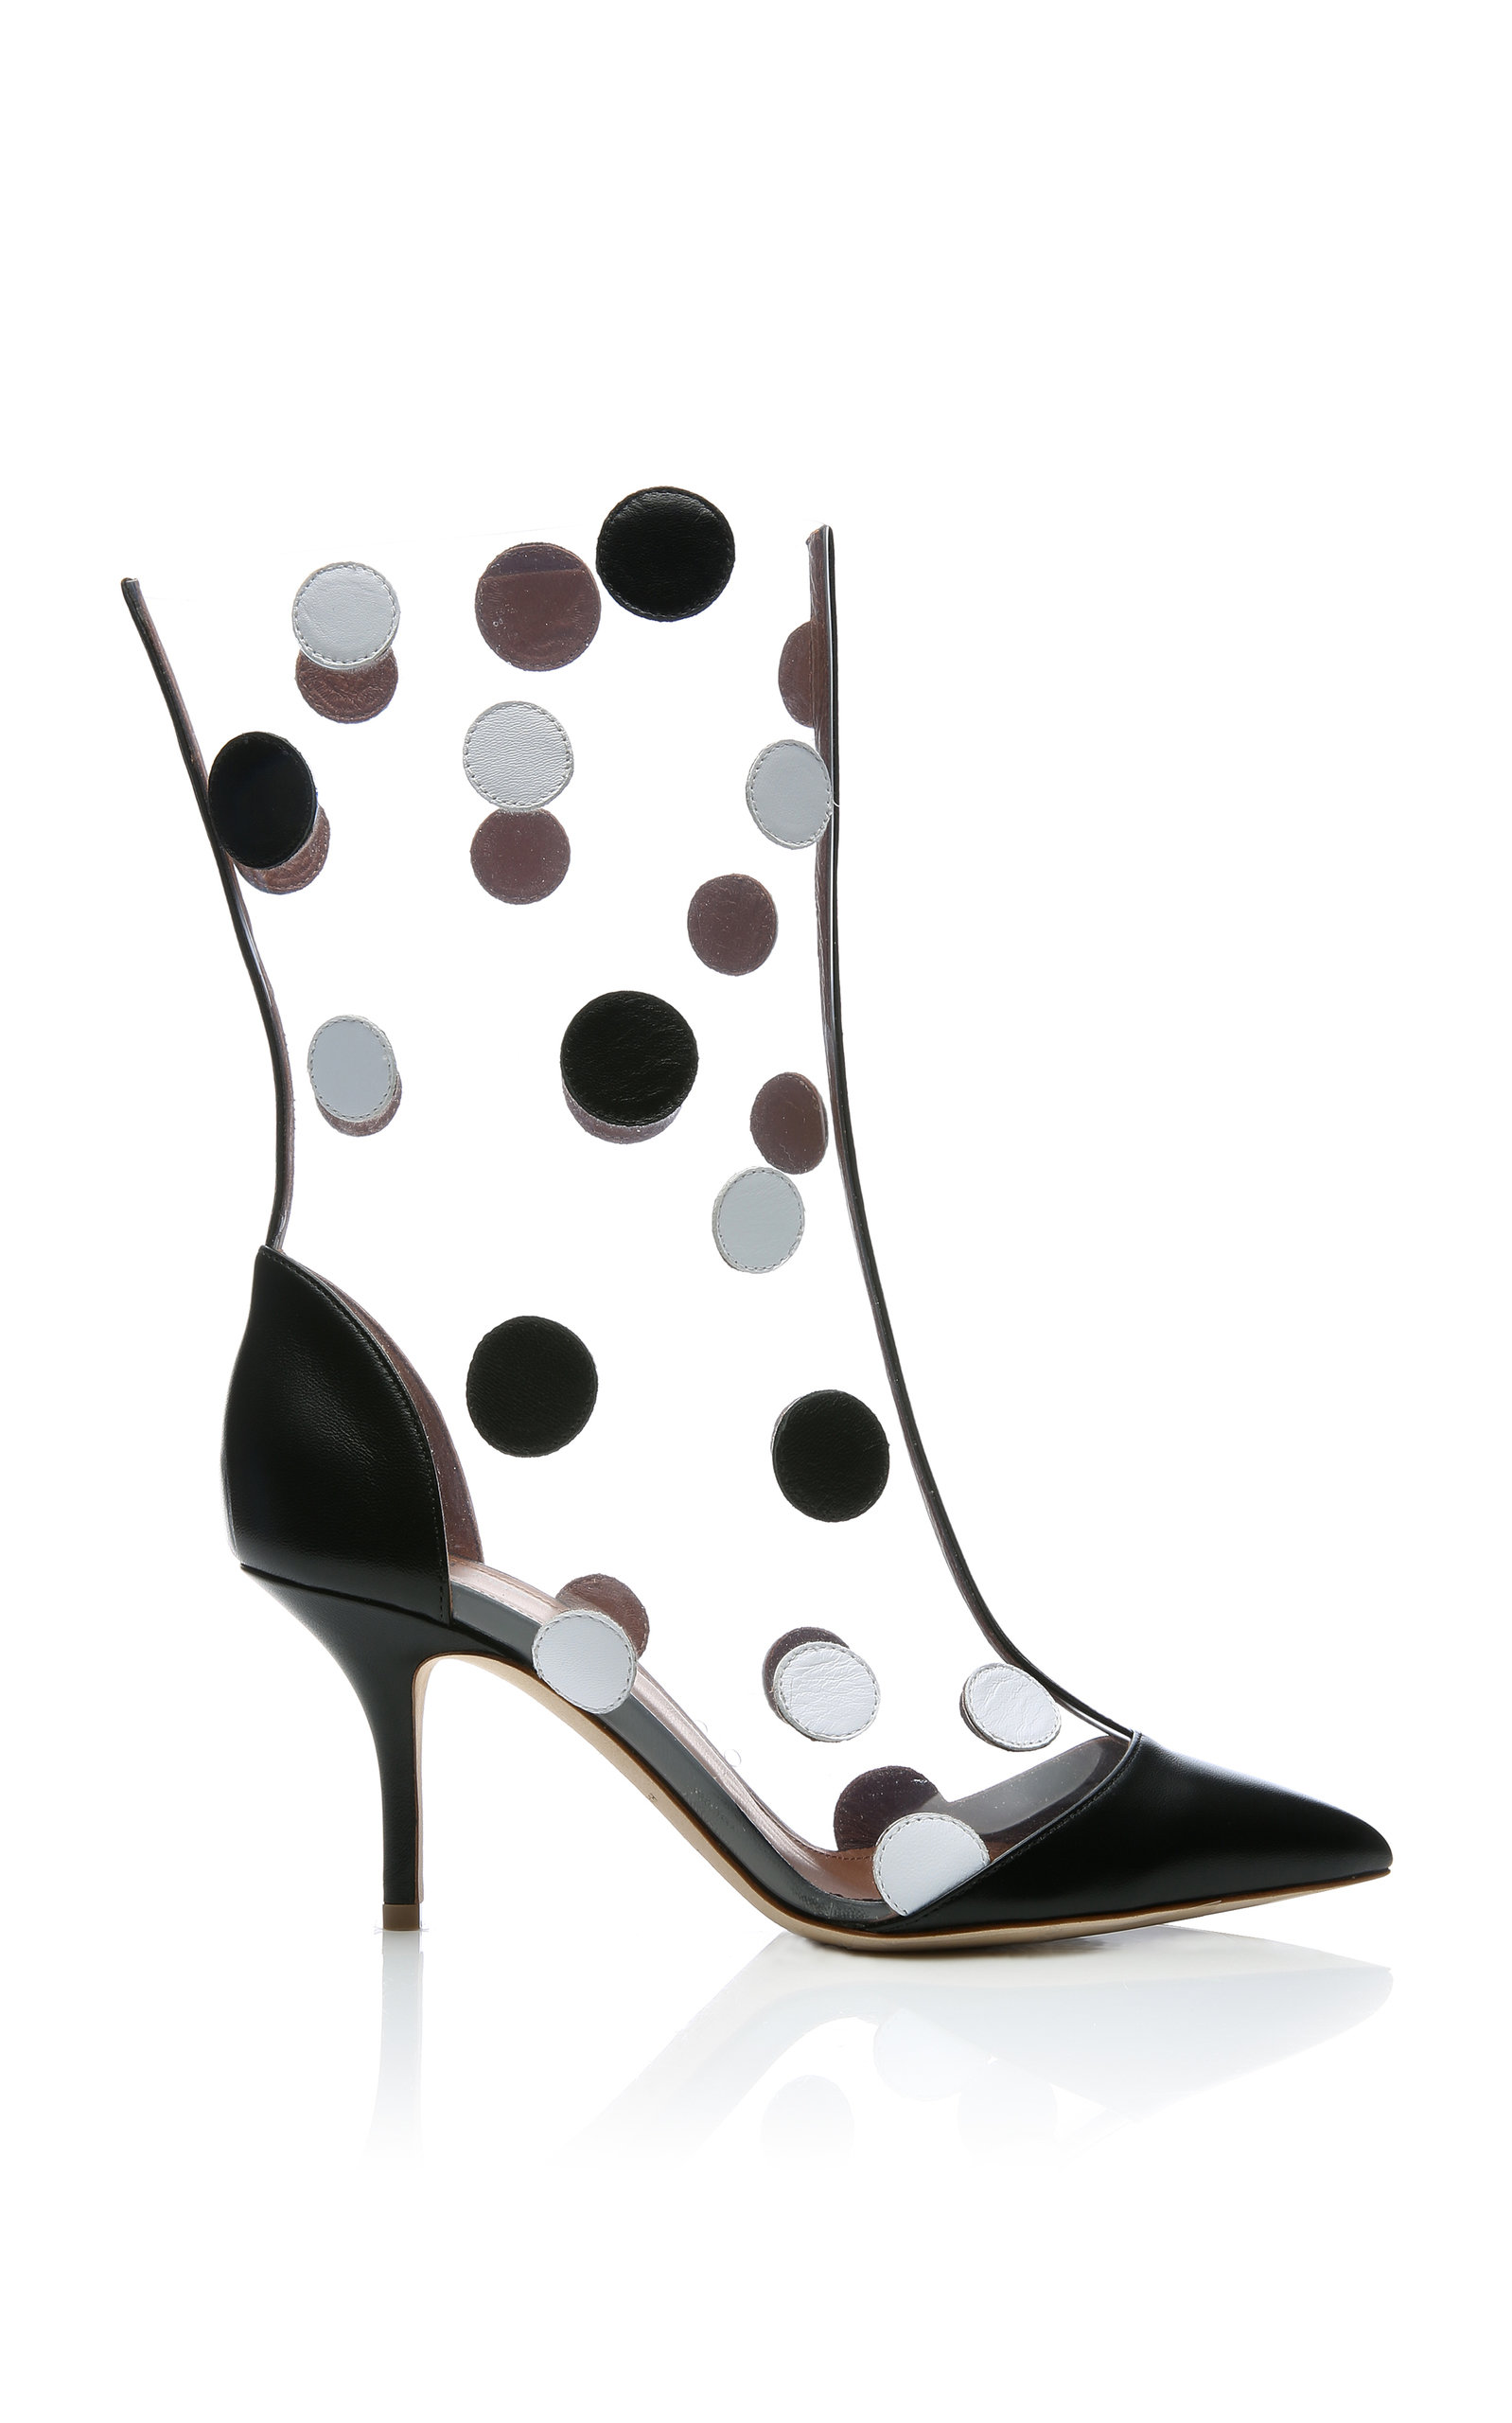 MALONE SOULIERS X EMANUEL UNGARO Katoucha Polka-Dot Leather And Pvc Boots in Black/White